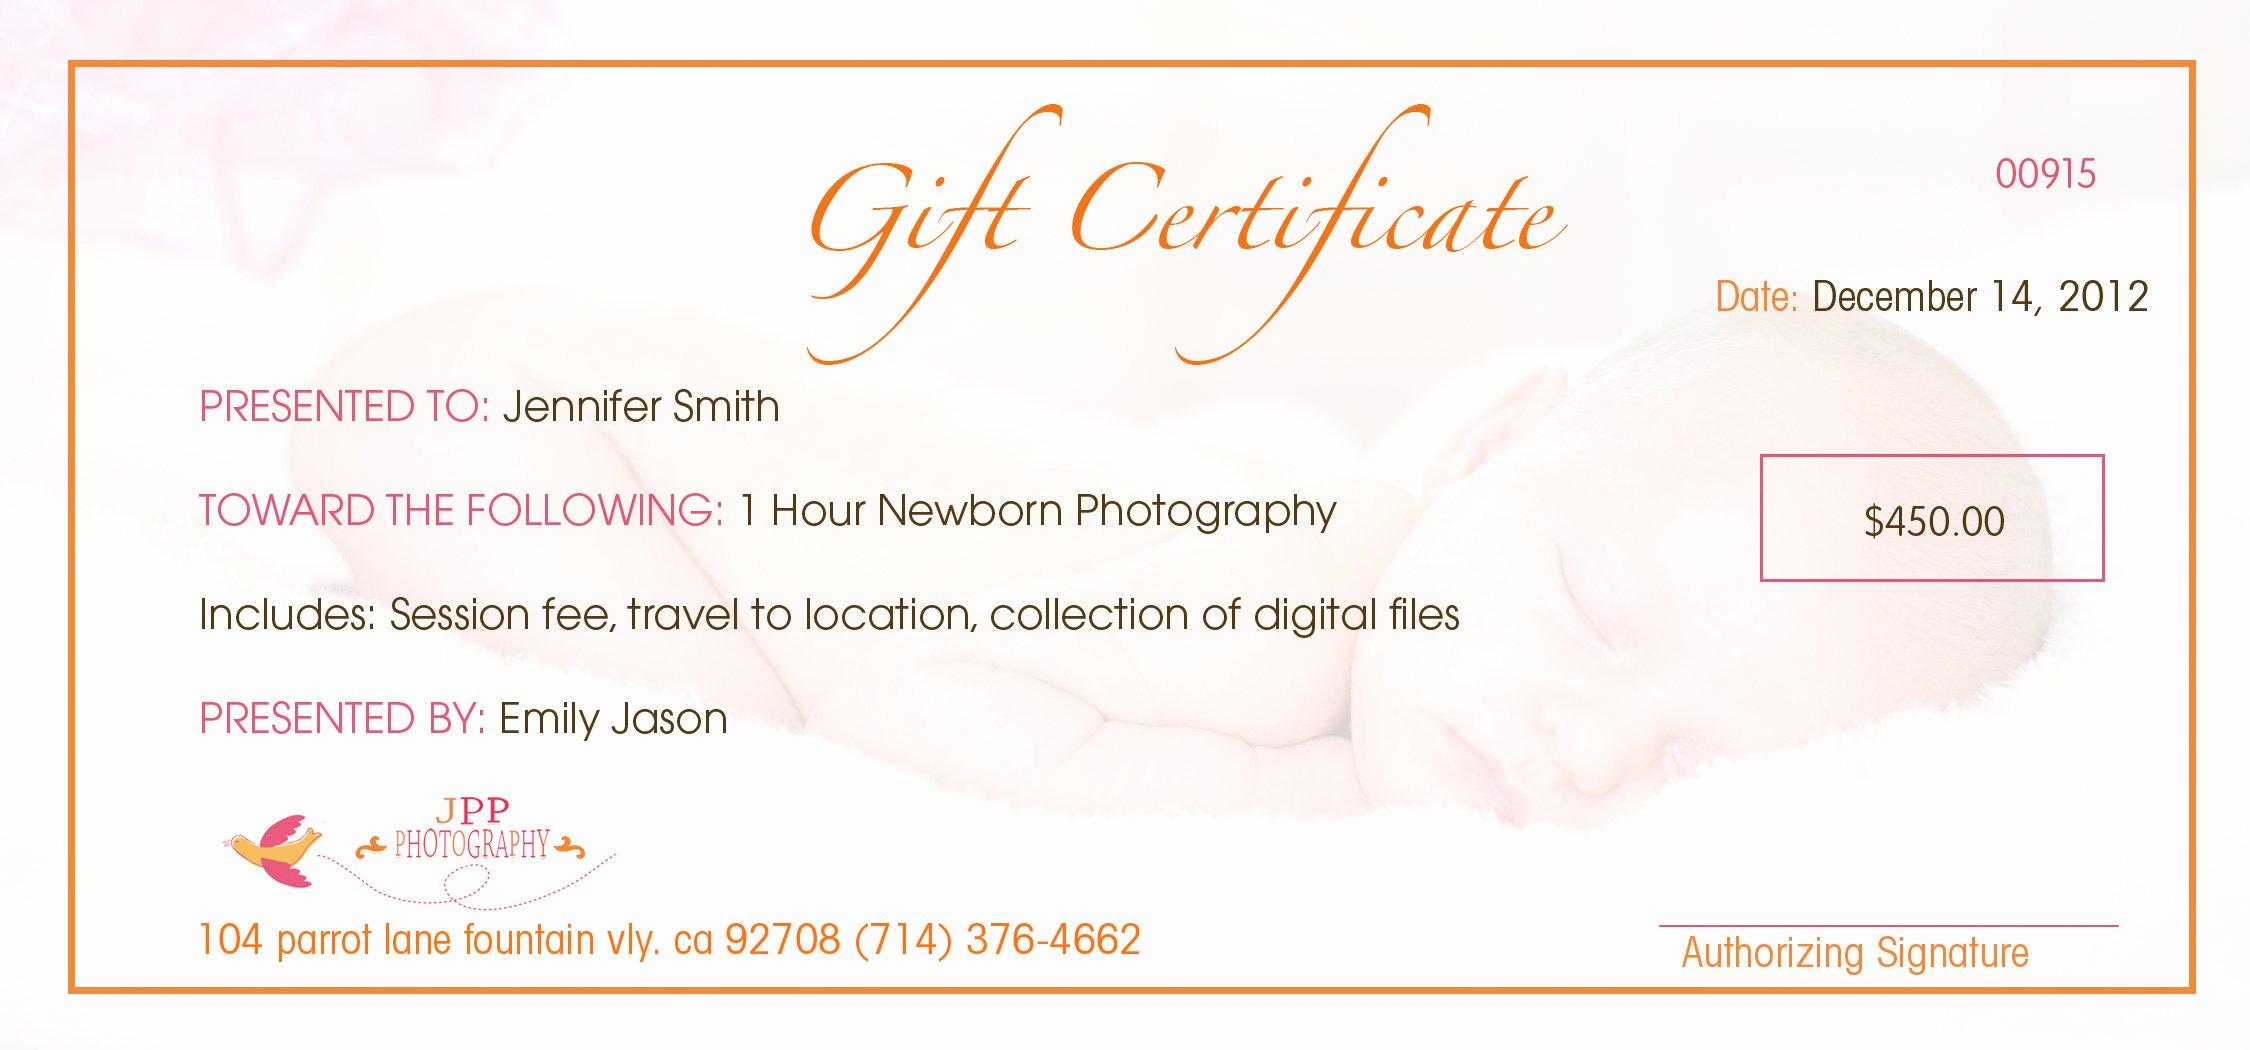 Gift Certificate Wording Beautiful Baby Gift Voucher Templatebaby Gift Voucher Template Hit